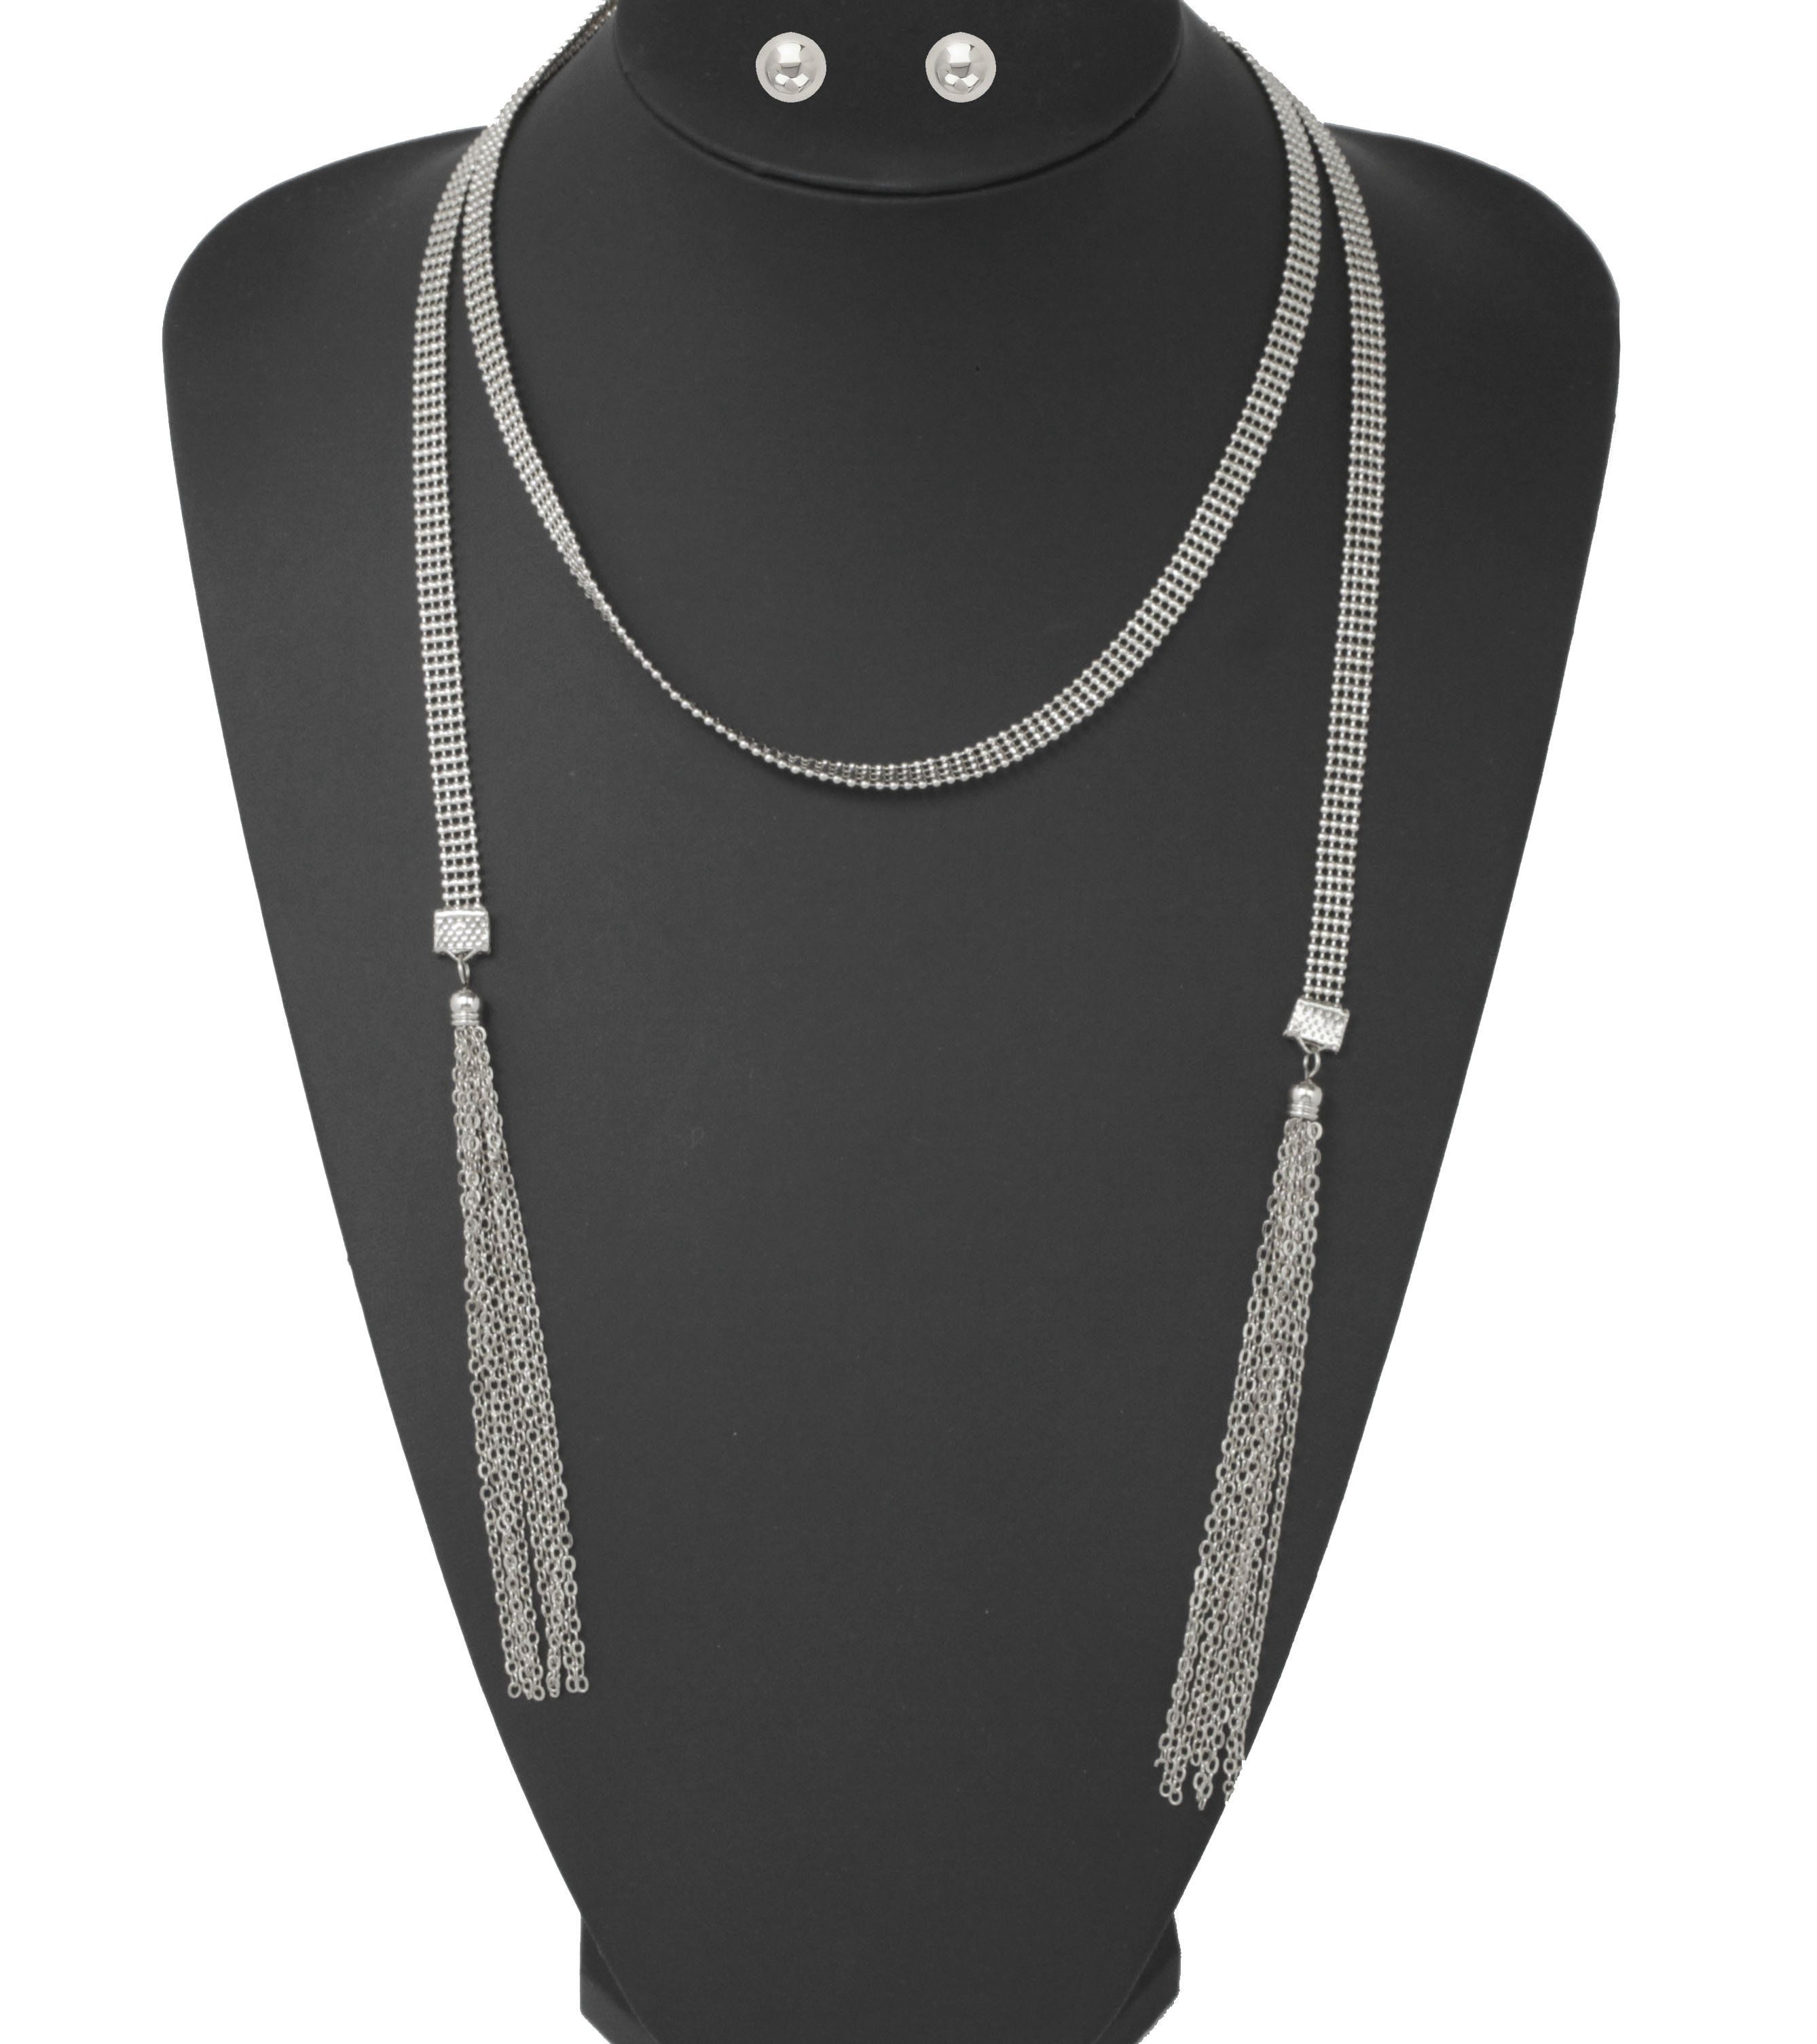 Multi chain lightweight choker necklace set choker necklaces and